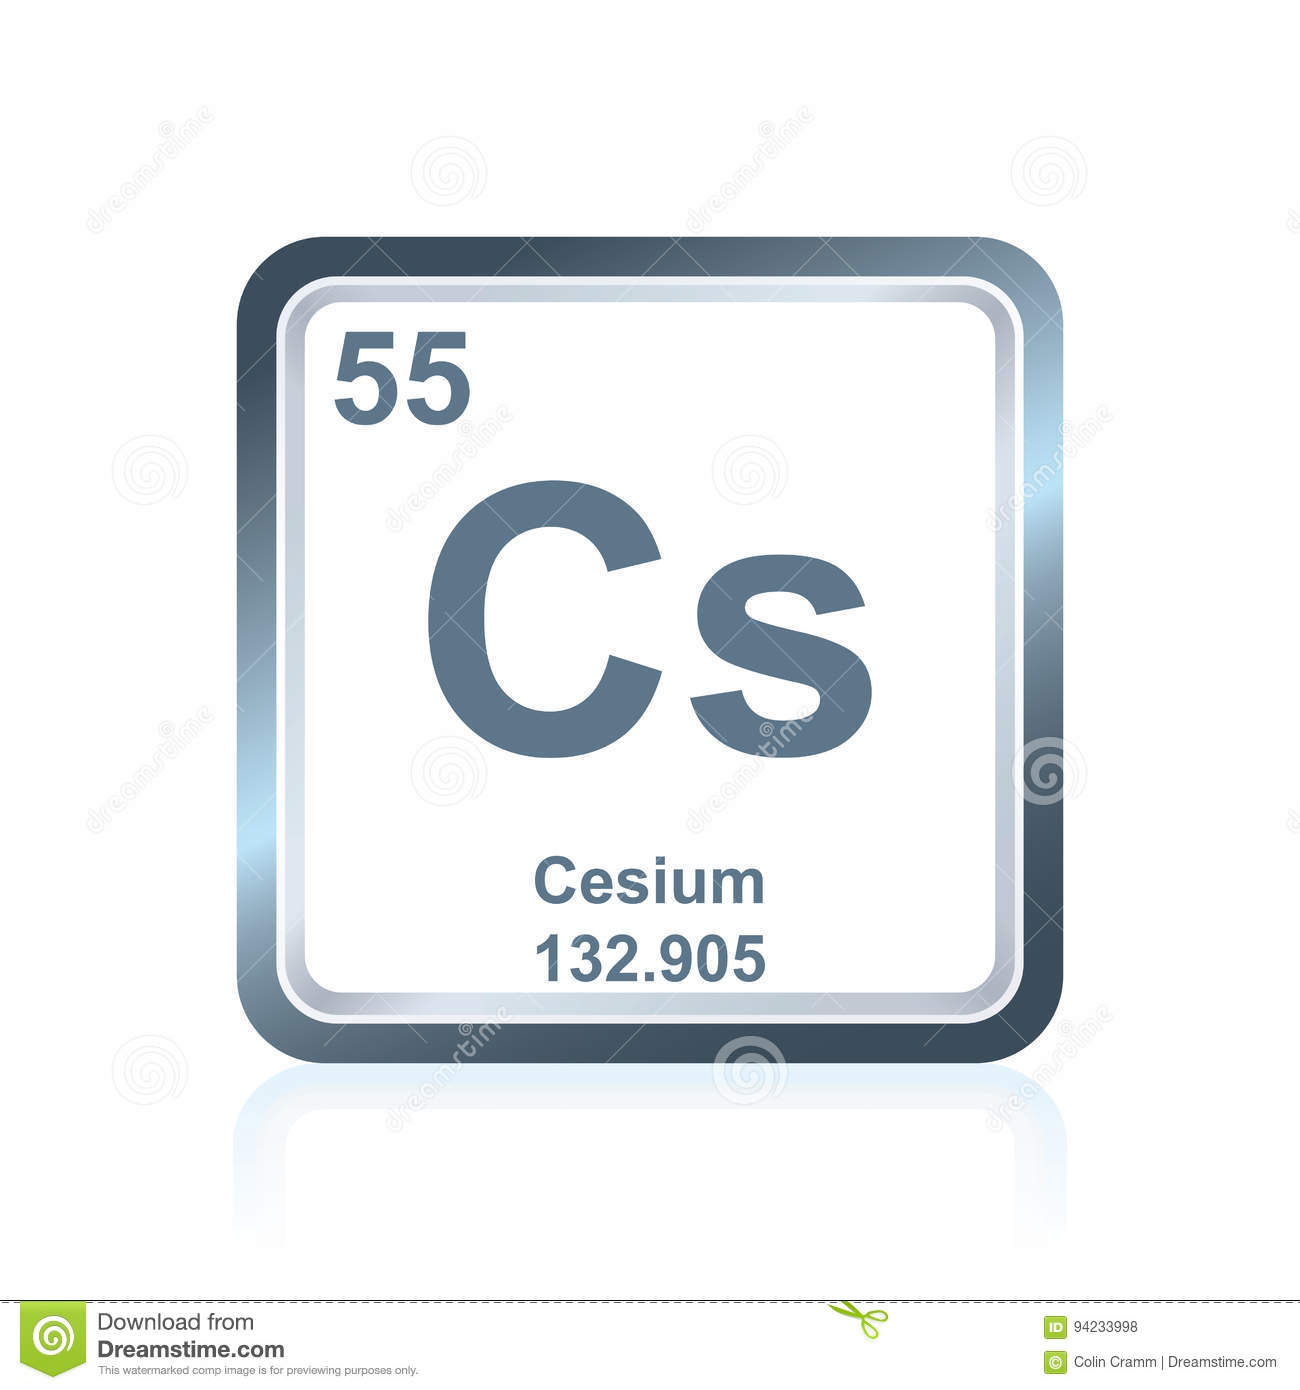 Chemical element cesium from the periodic table stock illustration royalty free illustration download chemical element cesium from the periodic table gamestrikefo Image collections